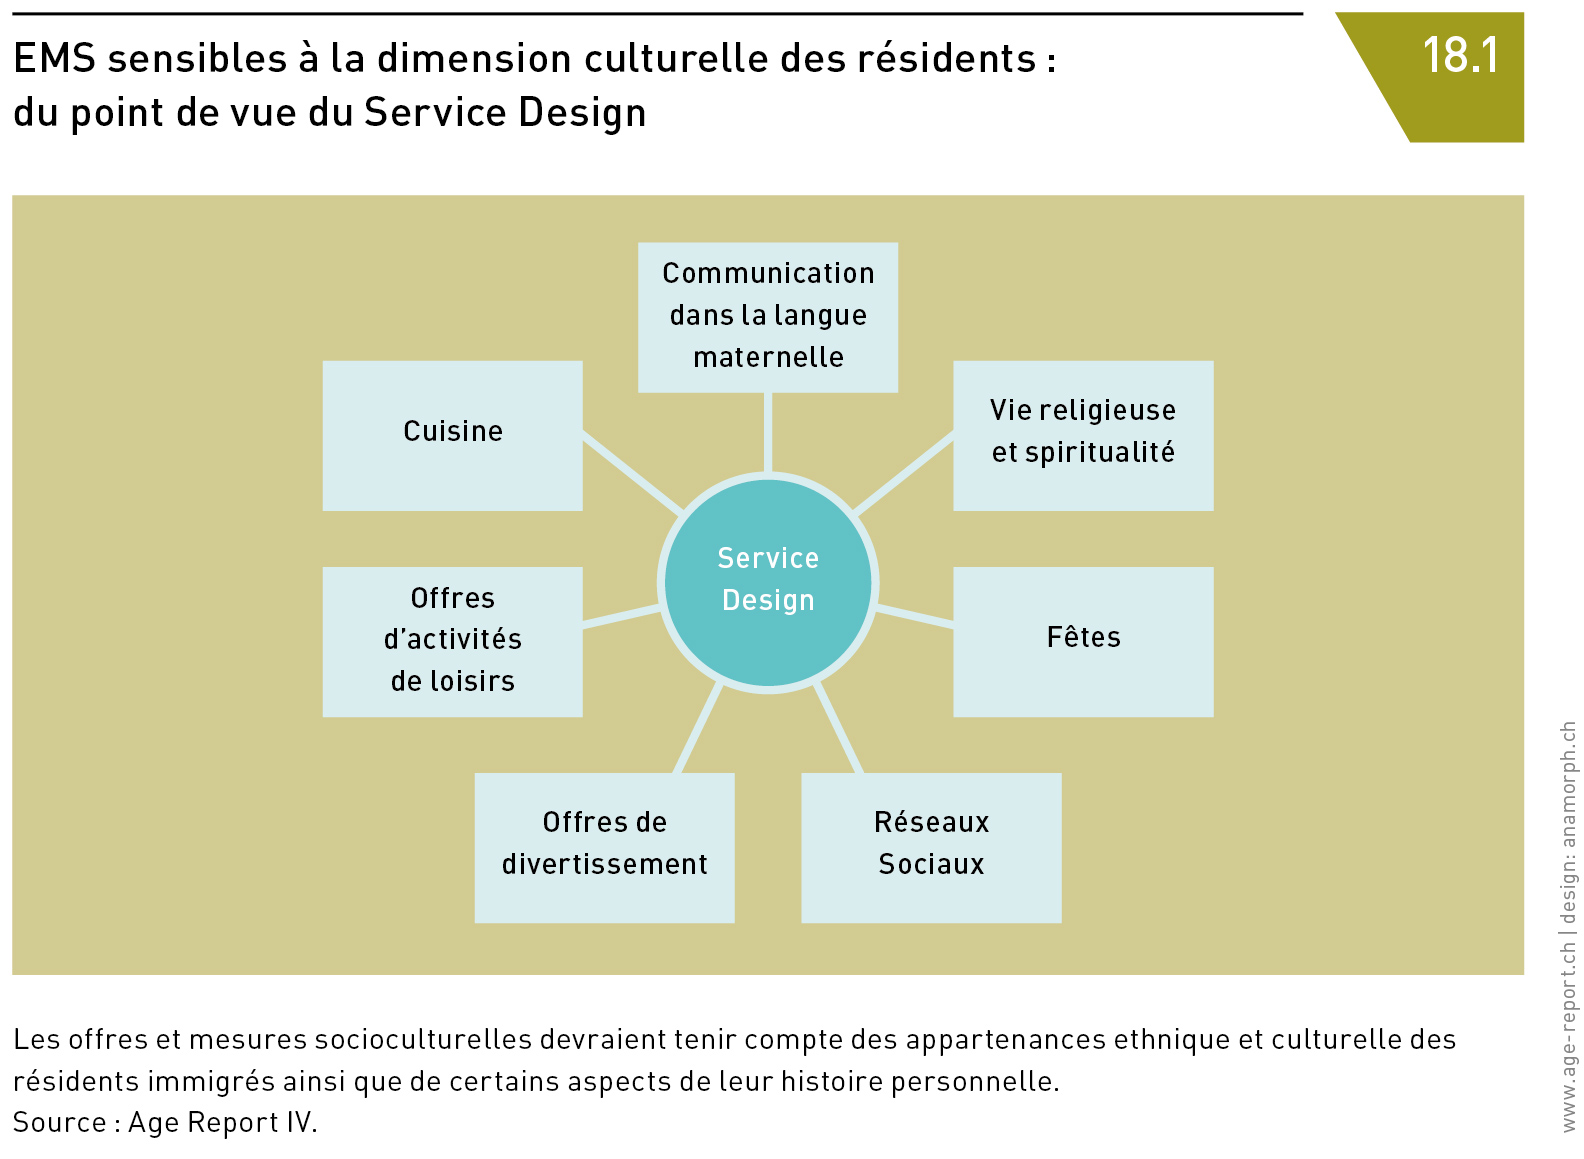 EMS sensibles à la dimension culturelle des résidents : du point de vue du Service Design